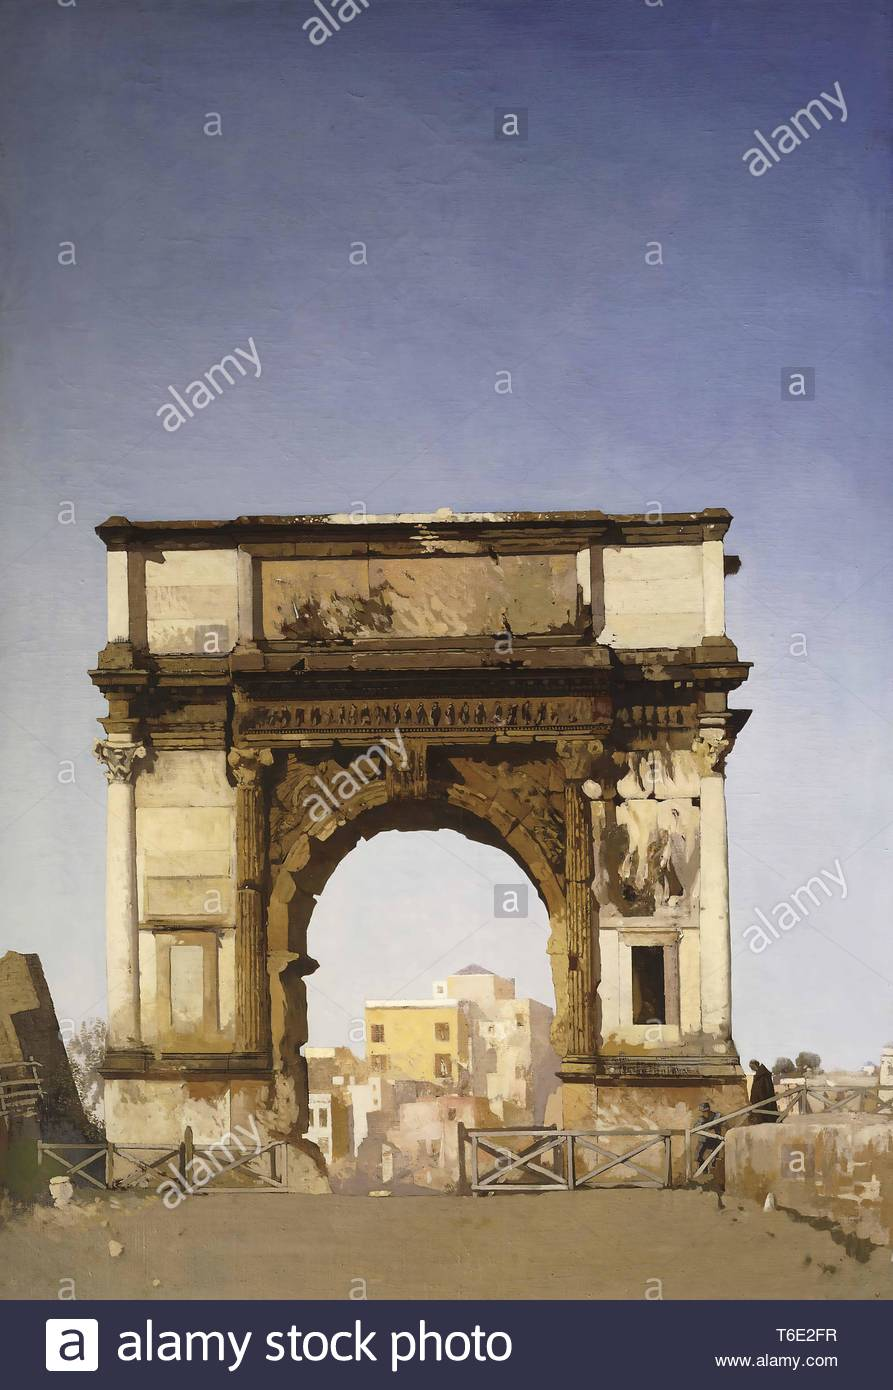 hight resolution of james kerr lawson the arch of titu stock image